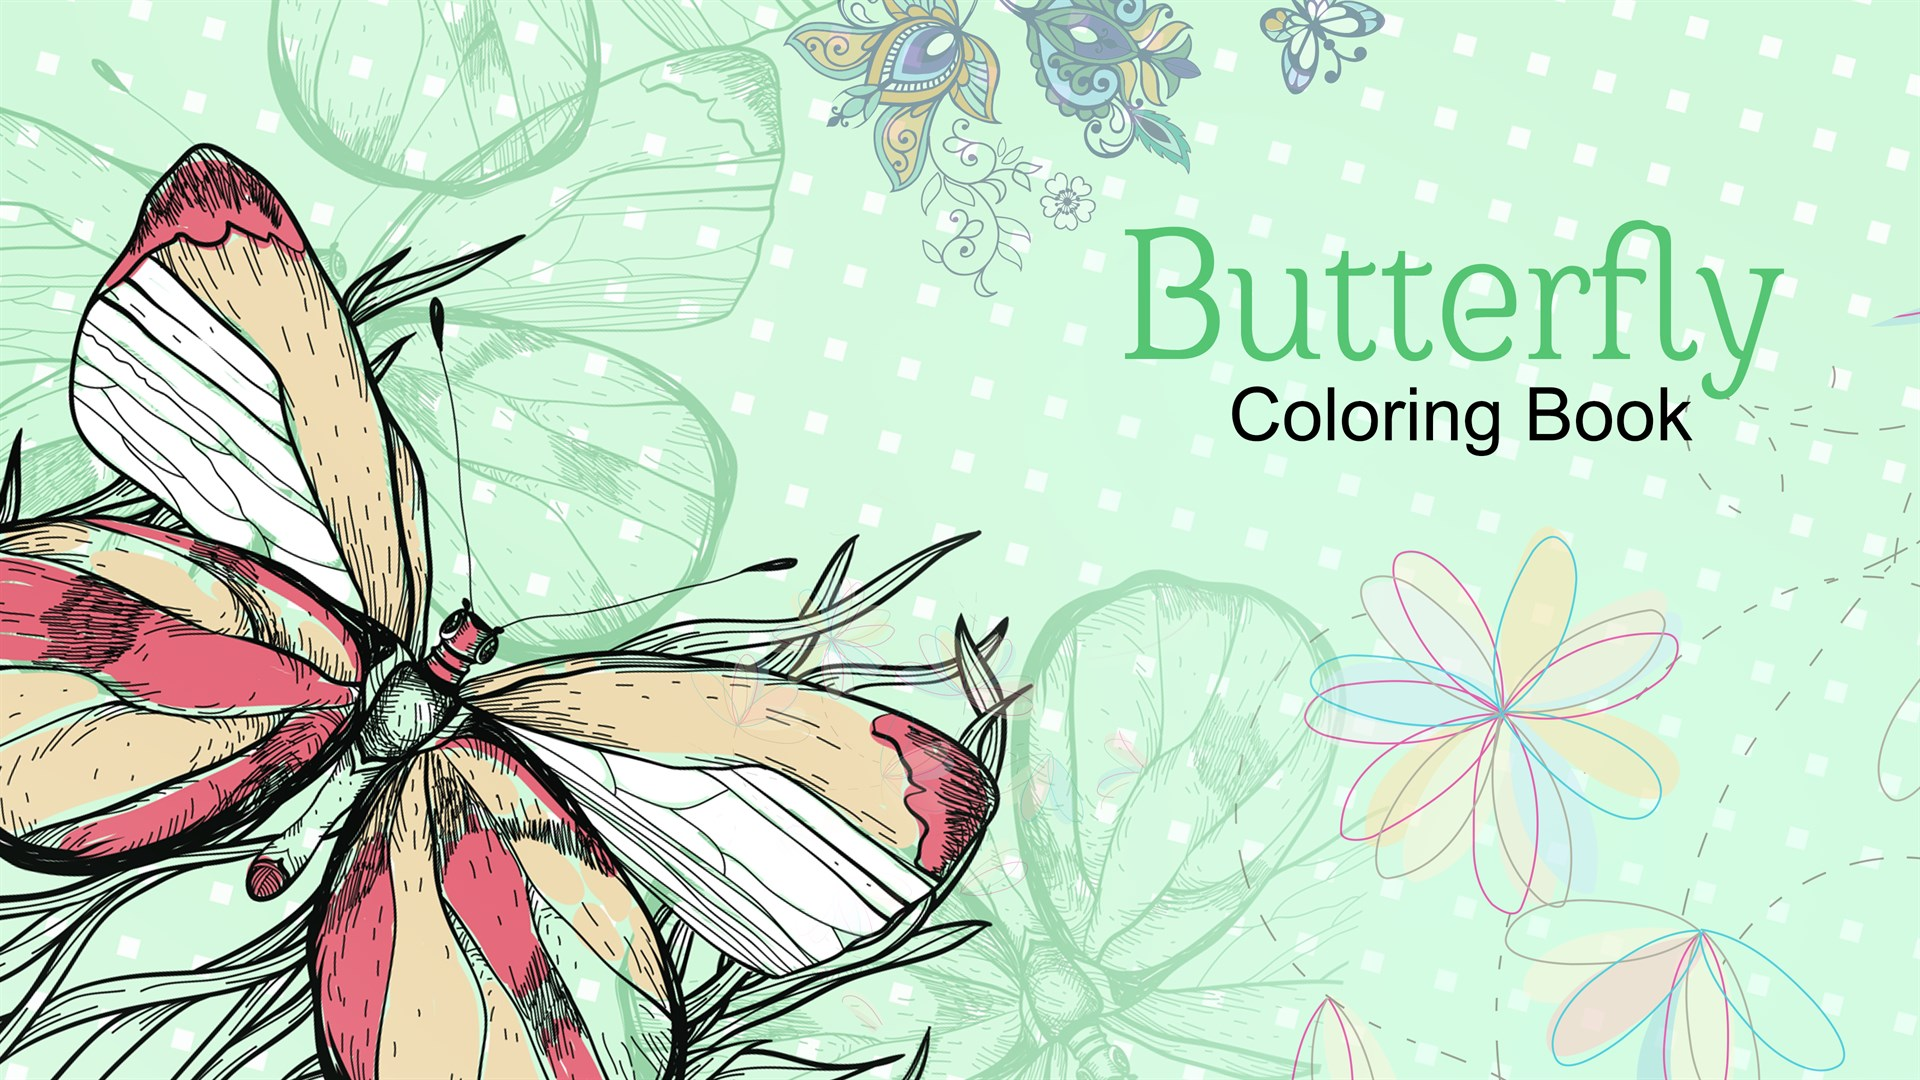 Get Butterfly Coloring Book Pages for Adult & Kids - Microsoft Store